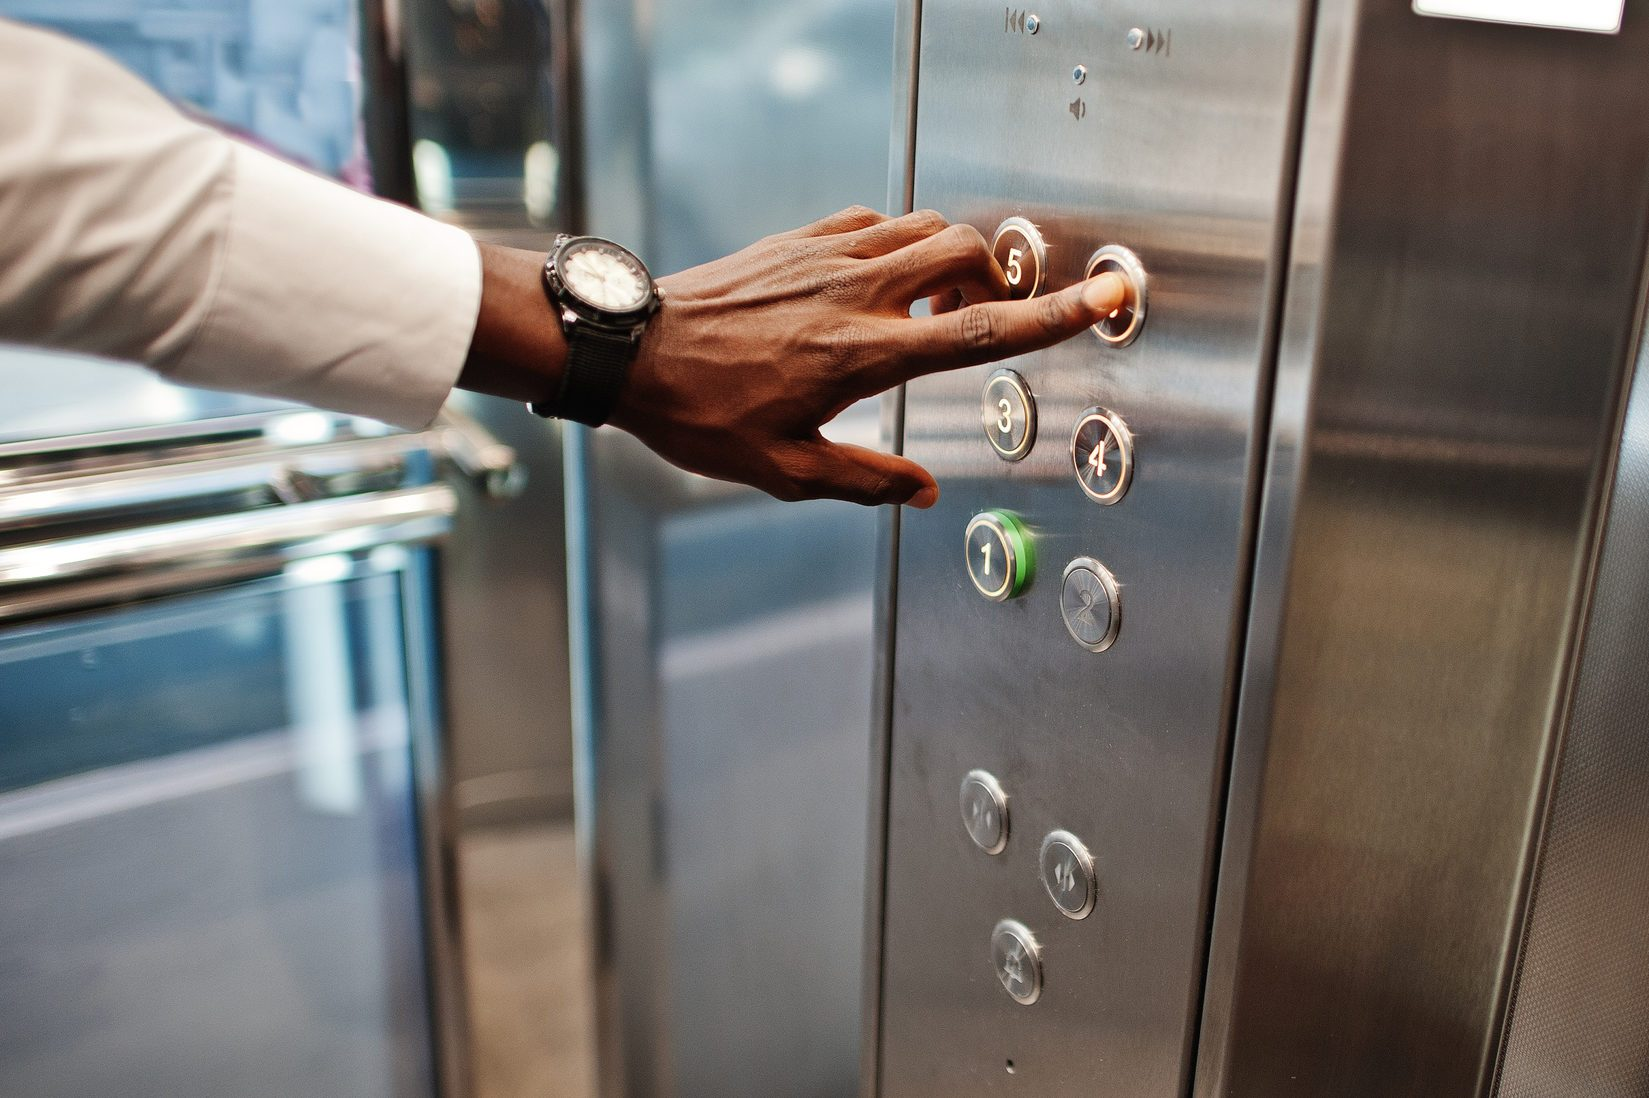 Close up photo of african american man hand with watches at elavator or modern lift, pushing button.